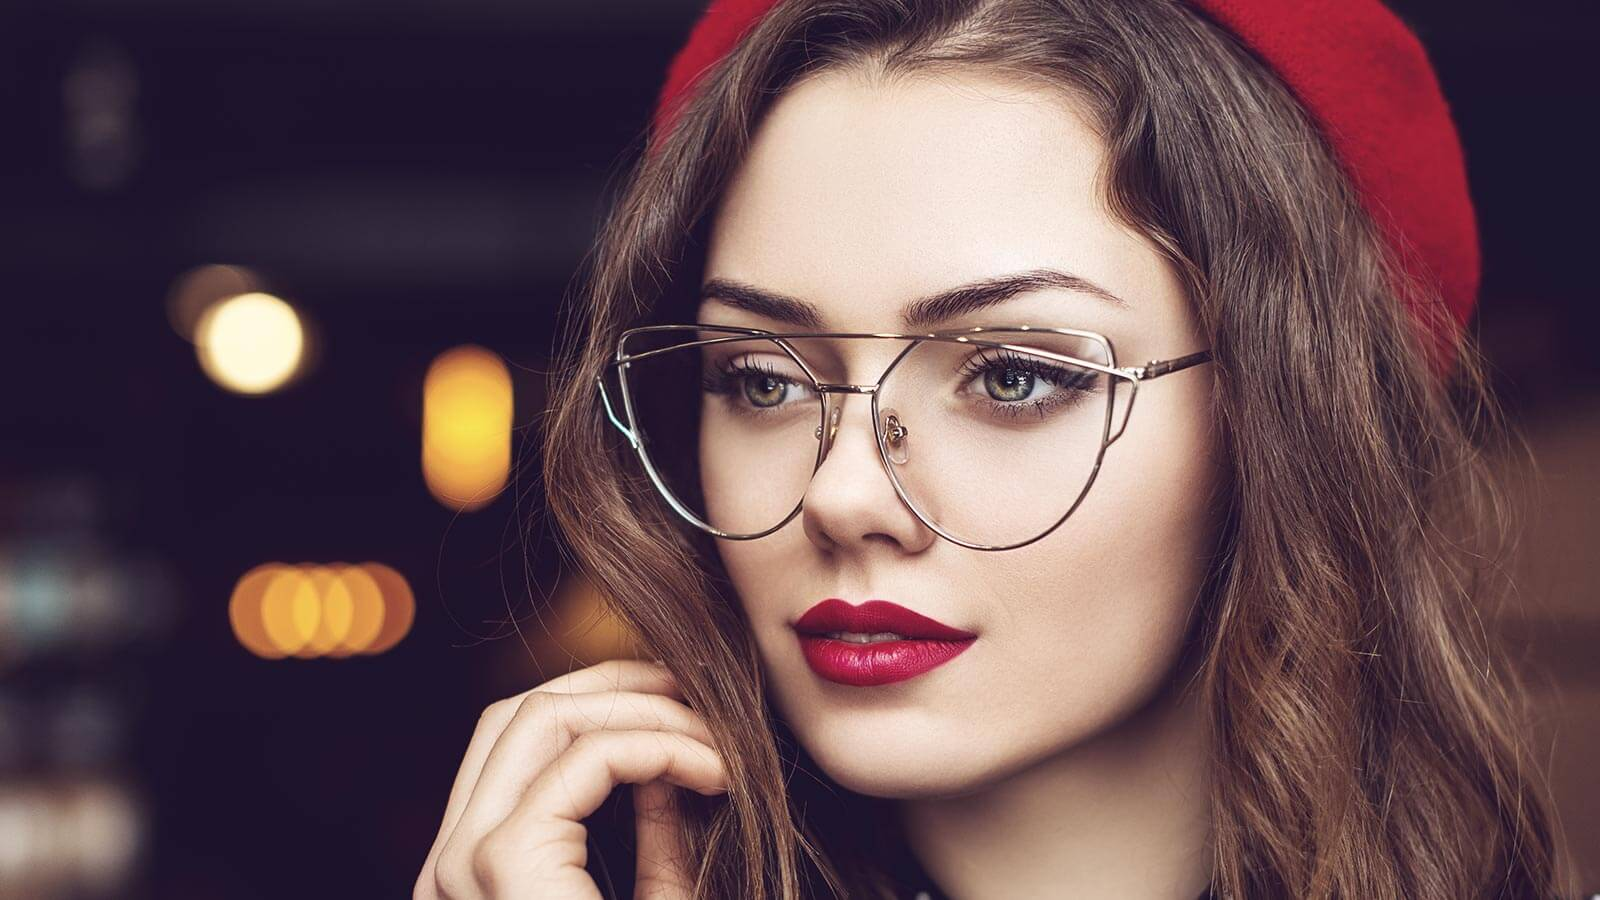 glasses that offer fashion, protection and efficiency